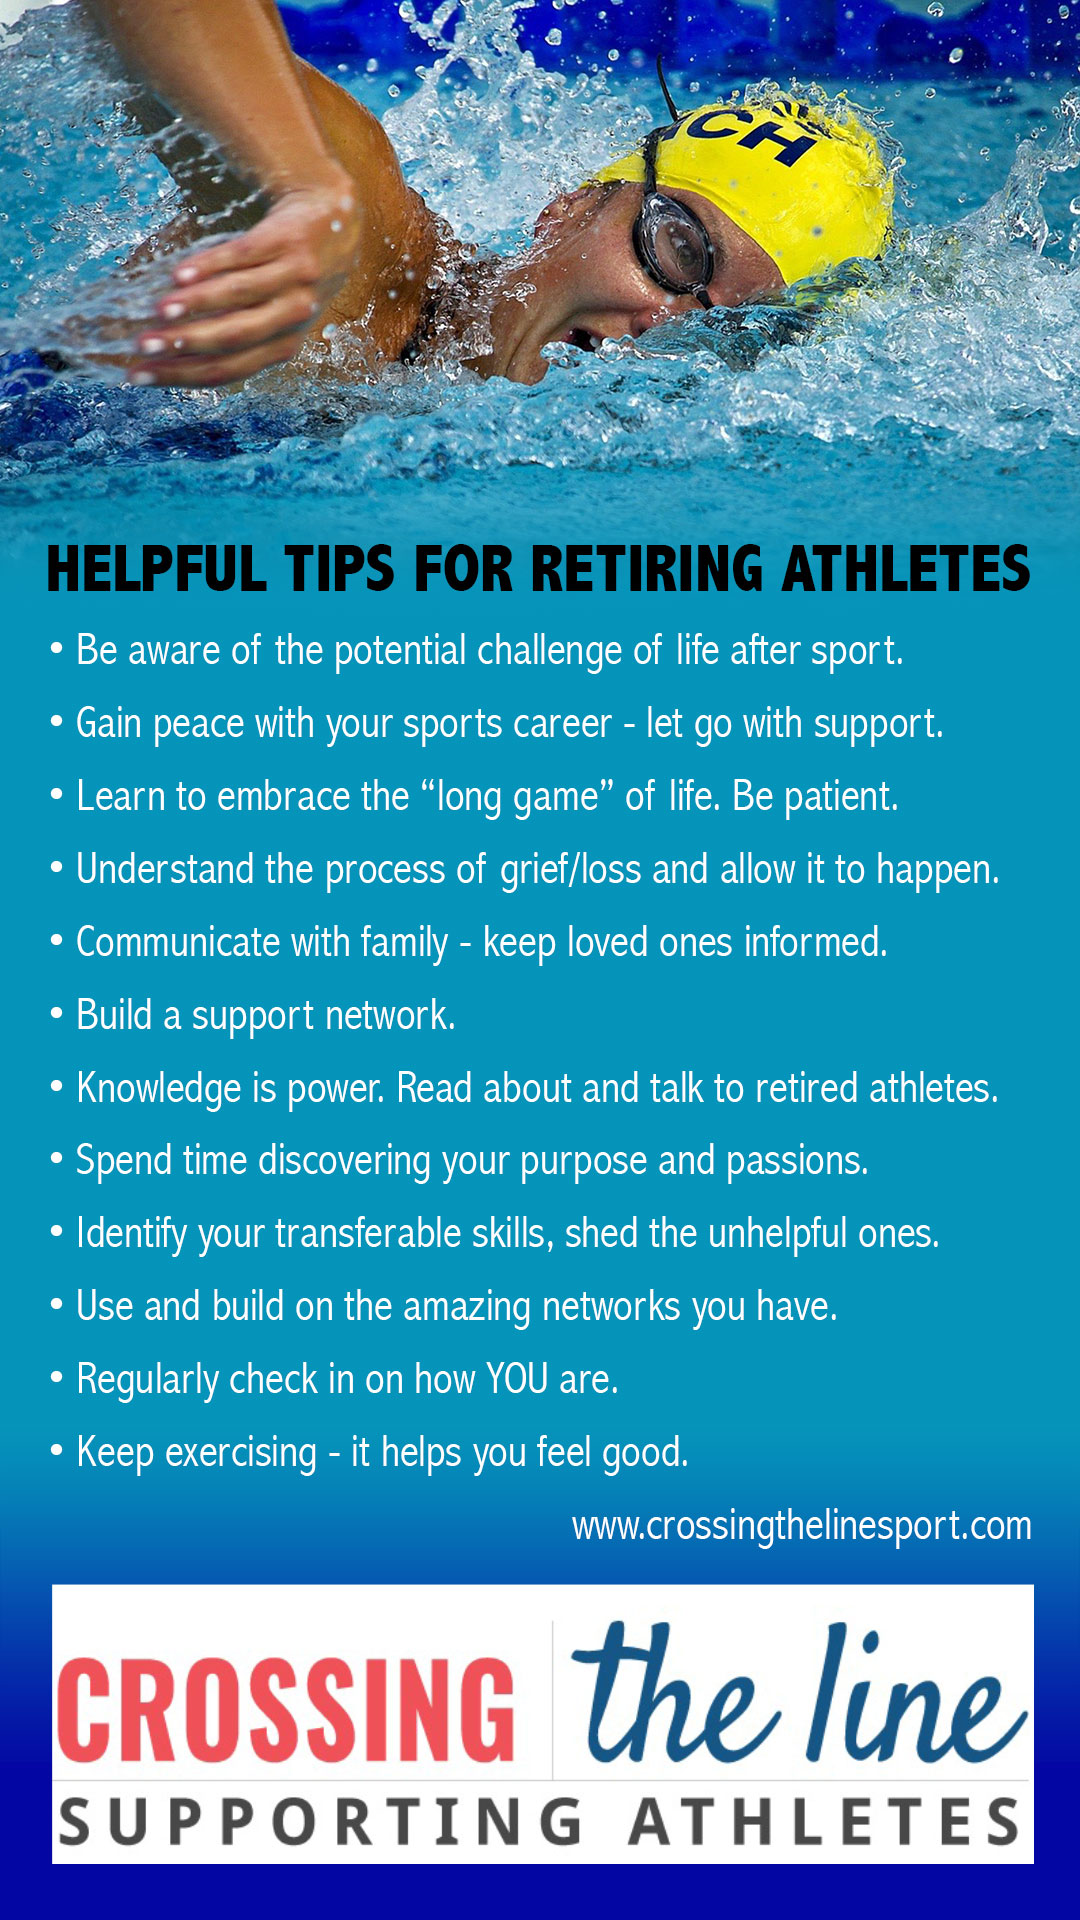 retirement, athlete, athlete retirement, athlete transition, olympics, Paralympics,  afl, nrl, rugby,